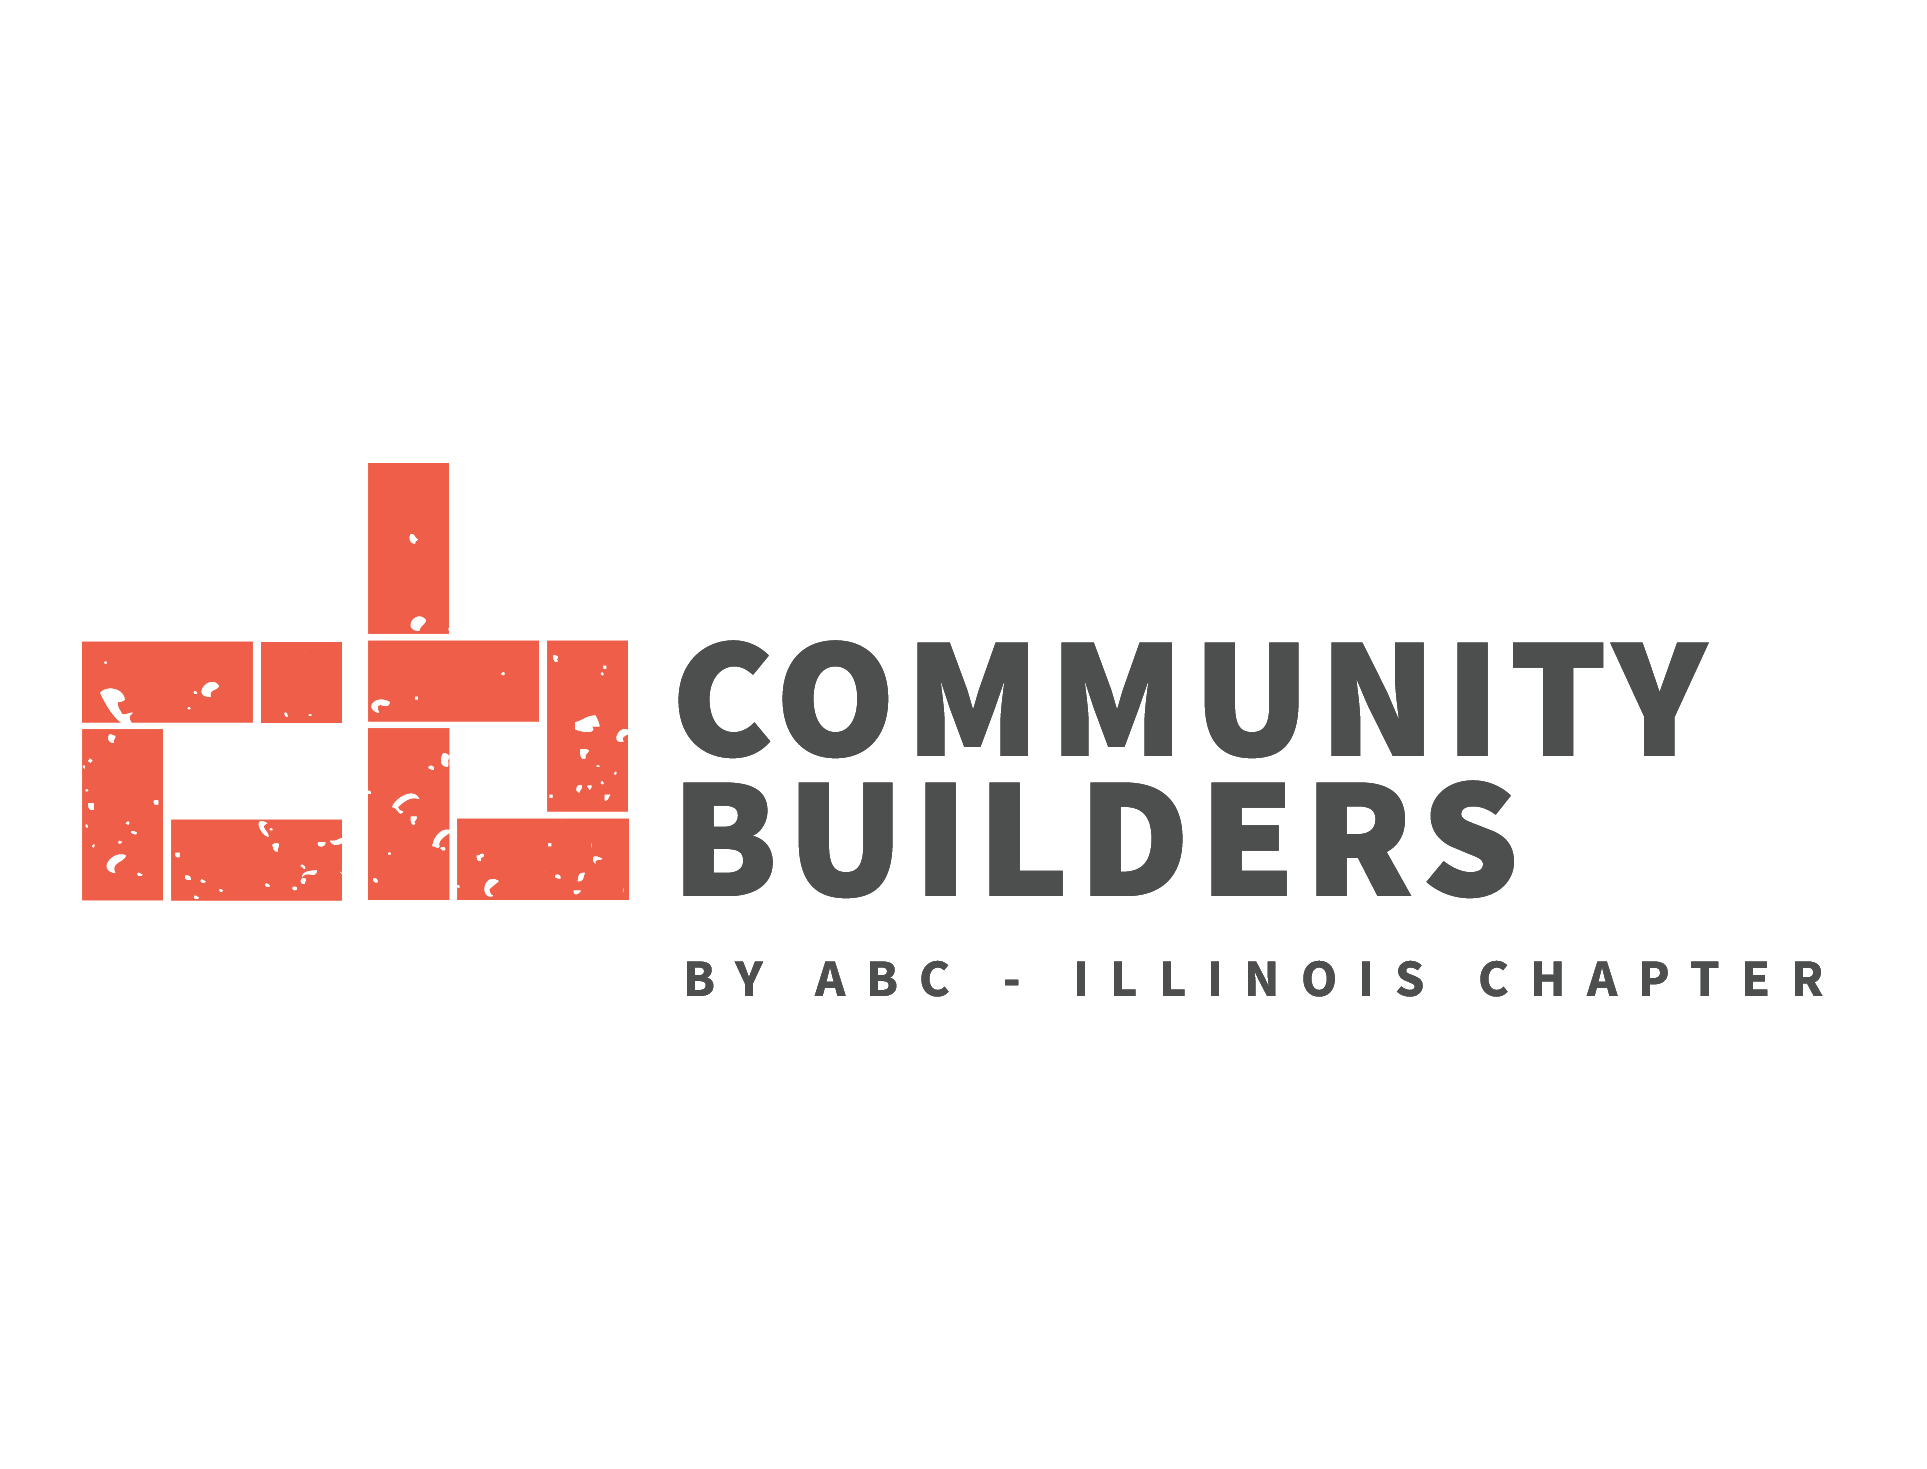 BUILDING ILLINOIS TOGETHER - The need for skilled labor in the construction industry is real. Illinois alone has a need for over 139,000 craft labor professionals. See what Associated Builders & Contractors - Illinois Chapter is doing to fill this shortage while giving back to the Chicagoland communities in which we live.